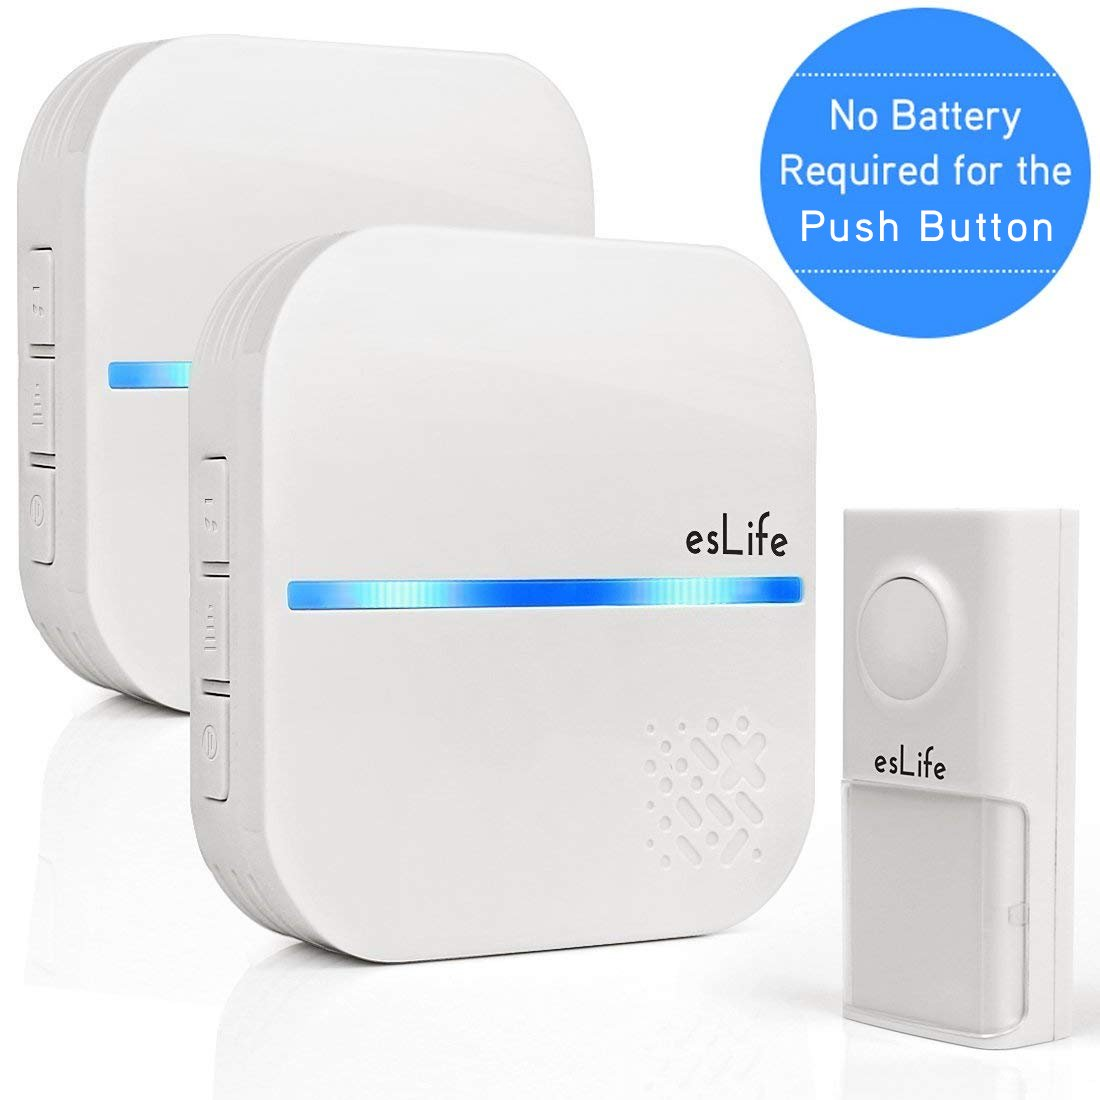 No Battery Required Wireless Doorbell, 1 Push Button(Self-Generating Power)